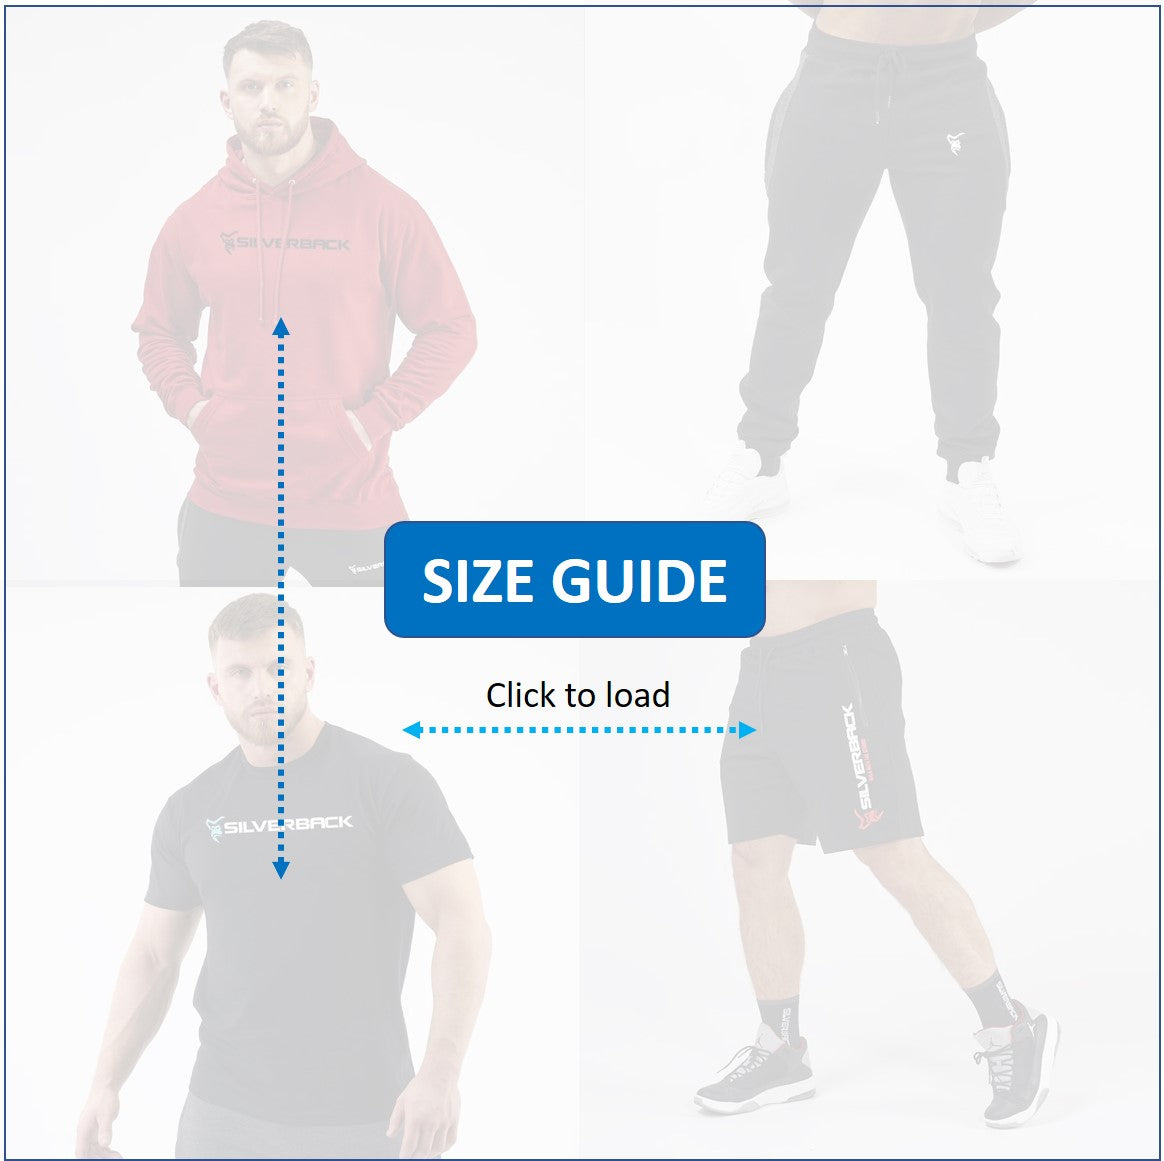 Size Guide - Click to load